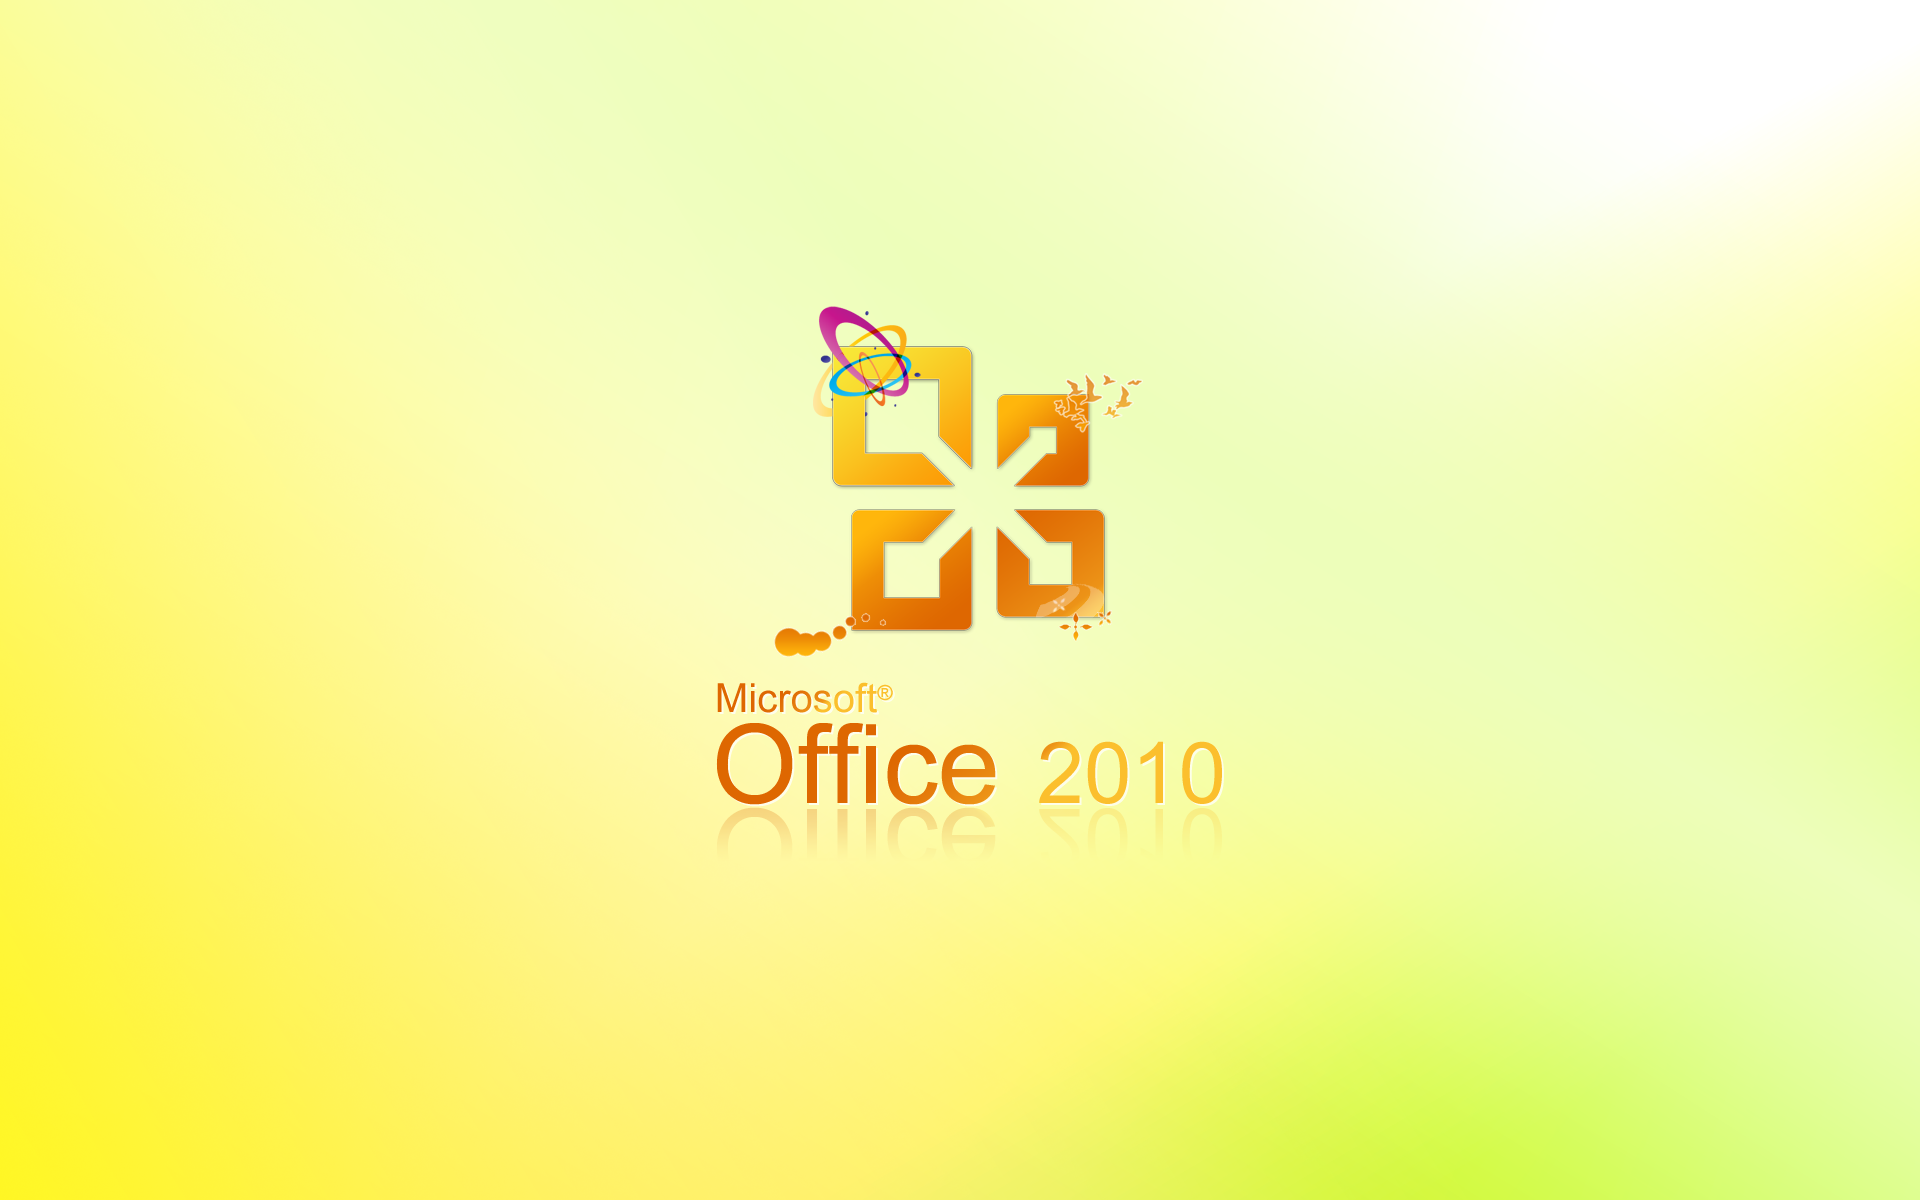 live free office wallpapers free office wallpapers. Wallpapers For Office. Office A Live Free I